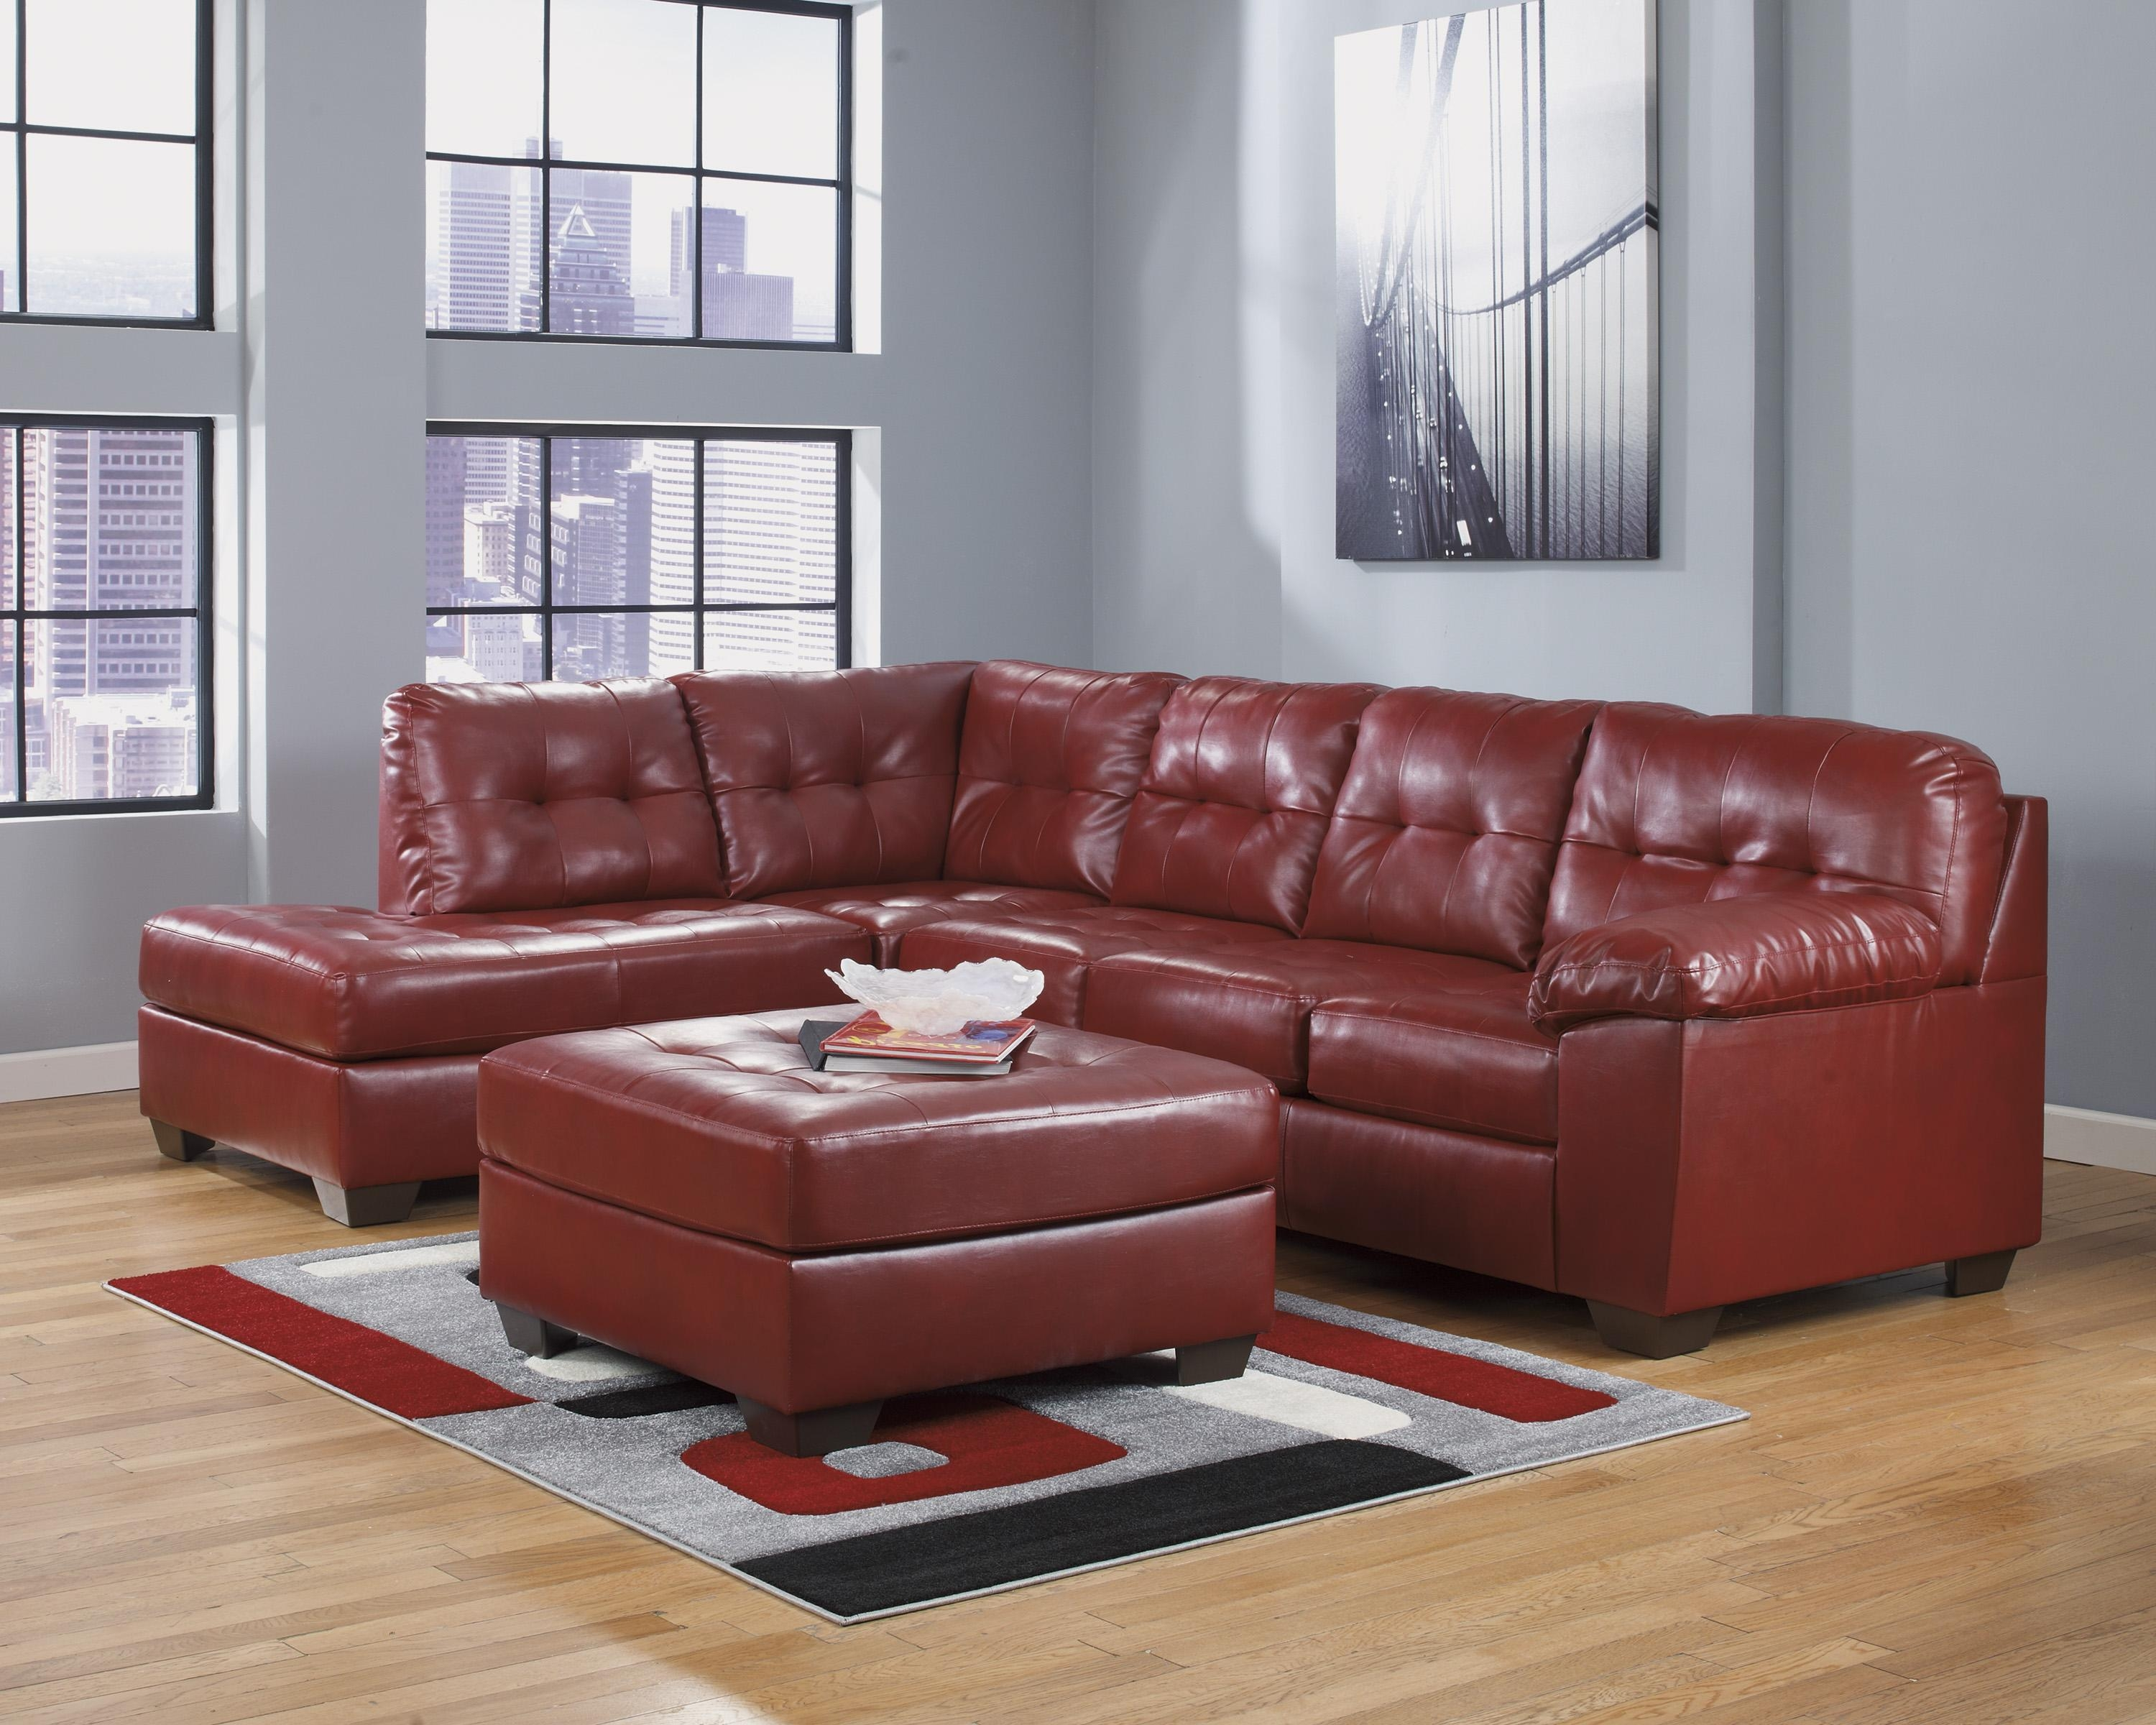 ashley sectional sofa set steam cleaning a suede 20 top furniture leather sofas ideas